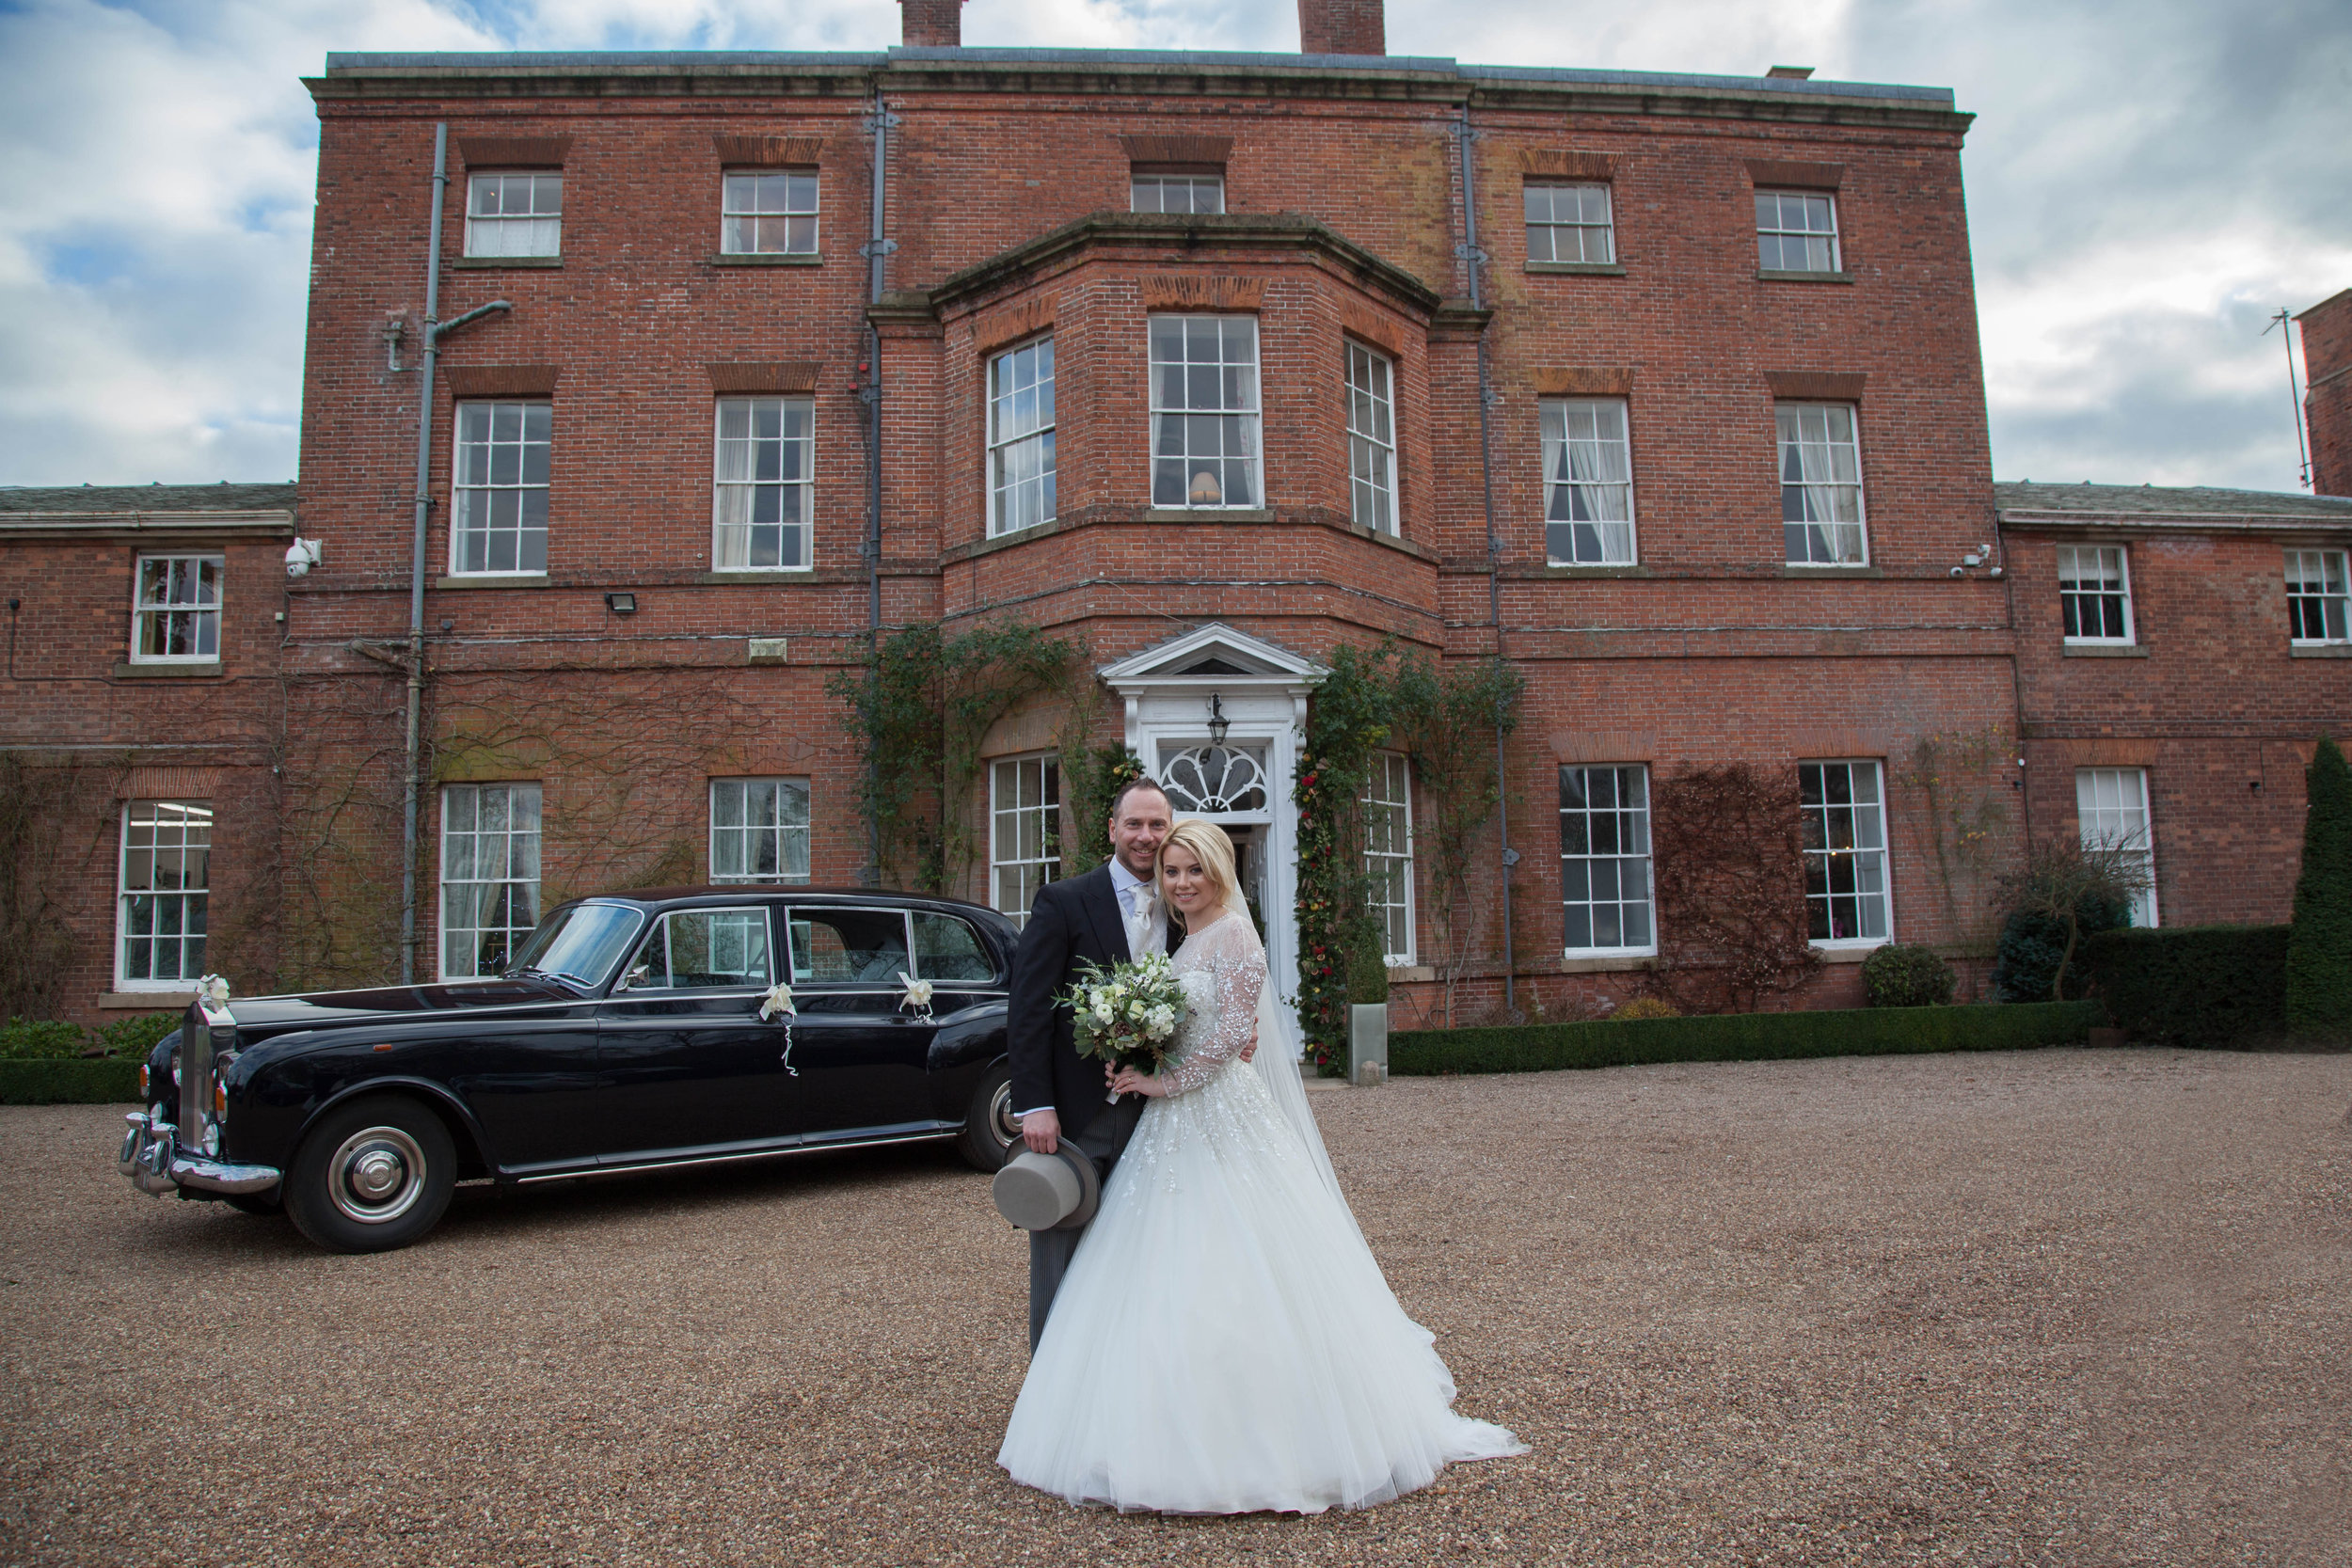 A Glamorous Jenny Packham Wedding Gown For A Romantic Winter Wedding At Norwood House 10.jpg